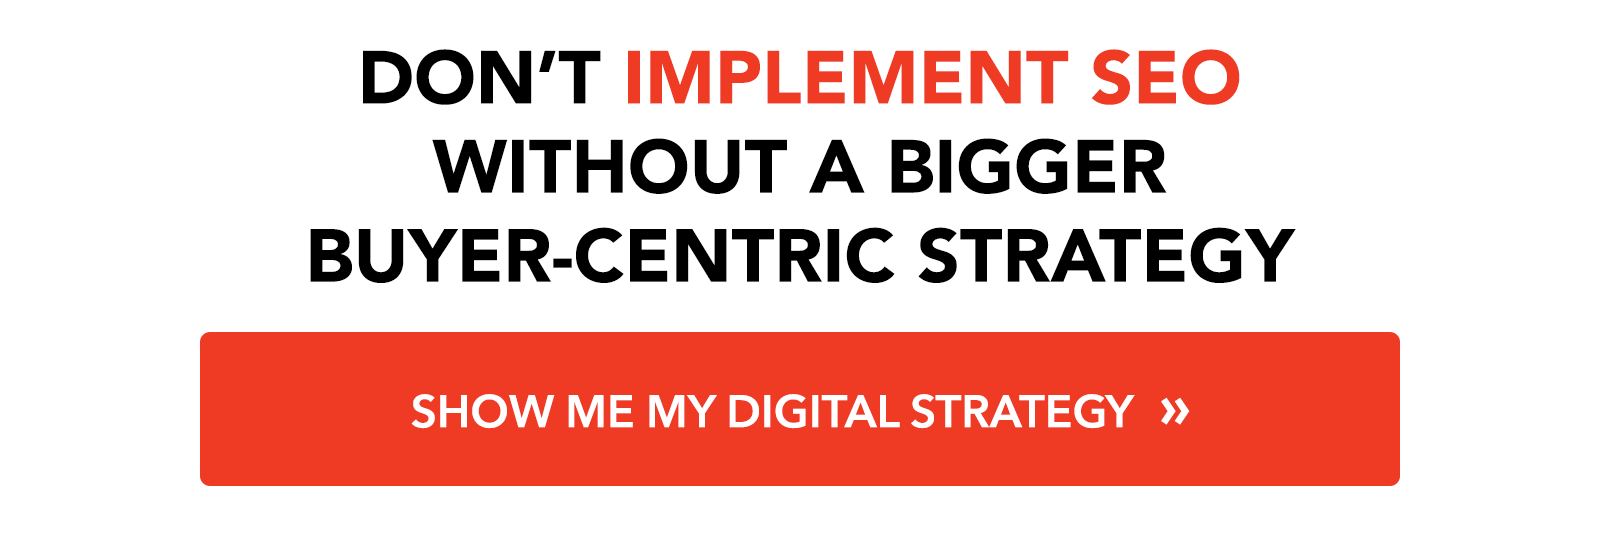 Don't implement SDO without a bigger buyer-centric strategy: show me my digital strategy »